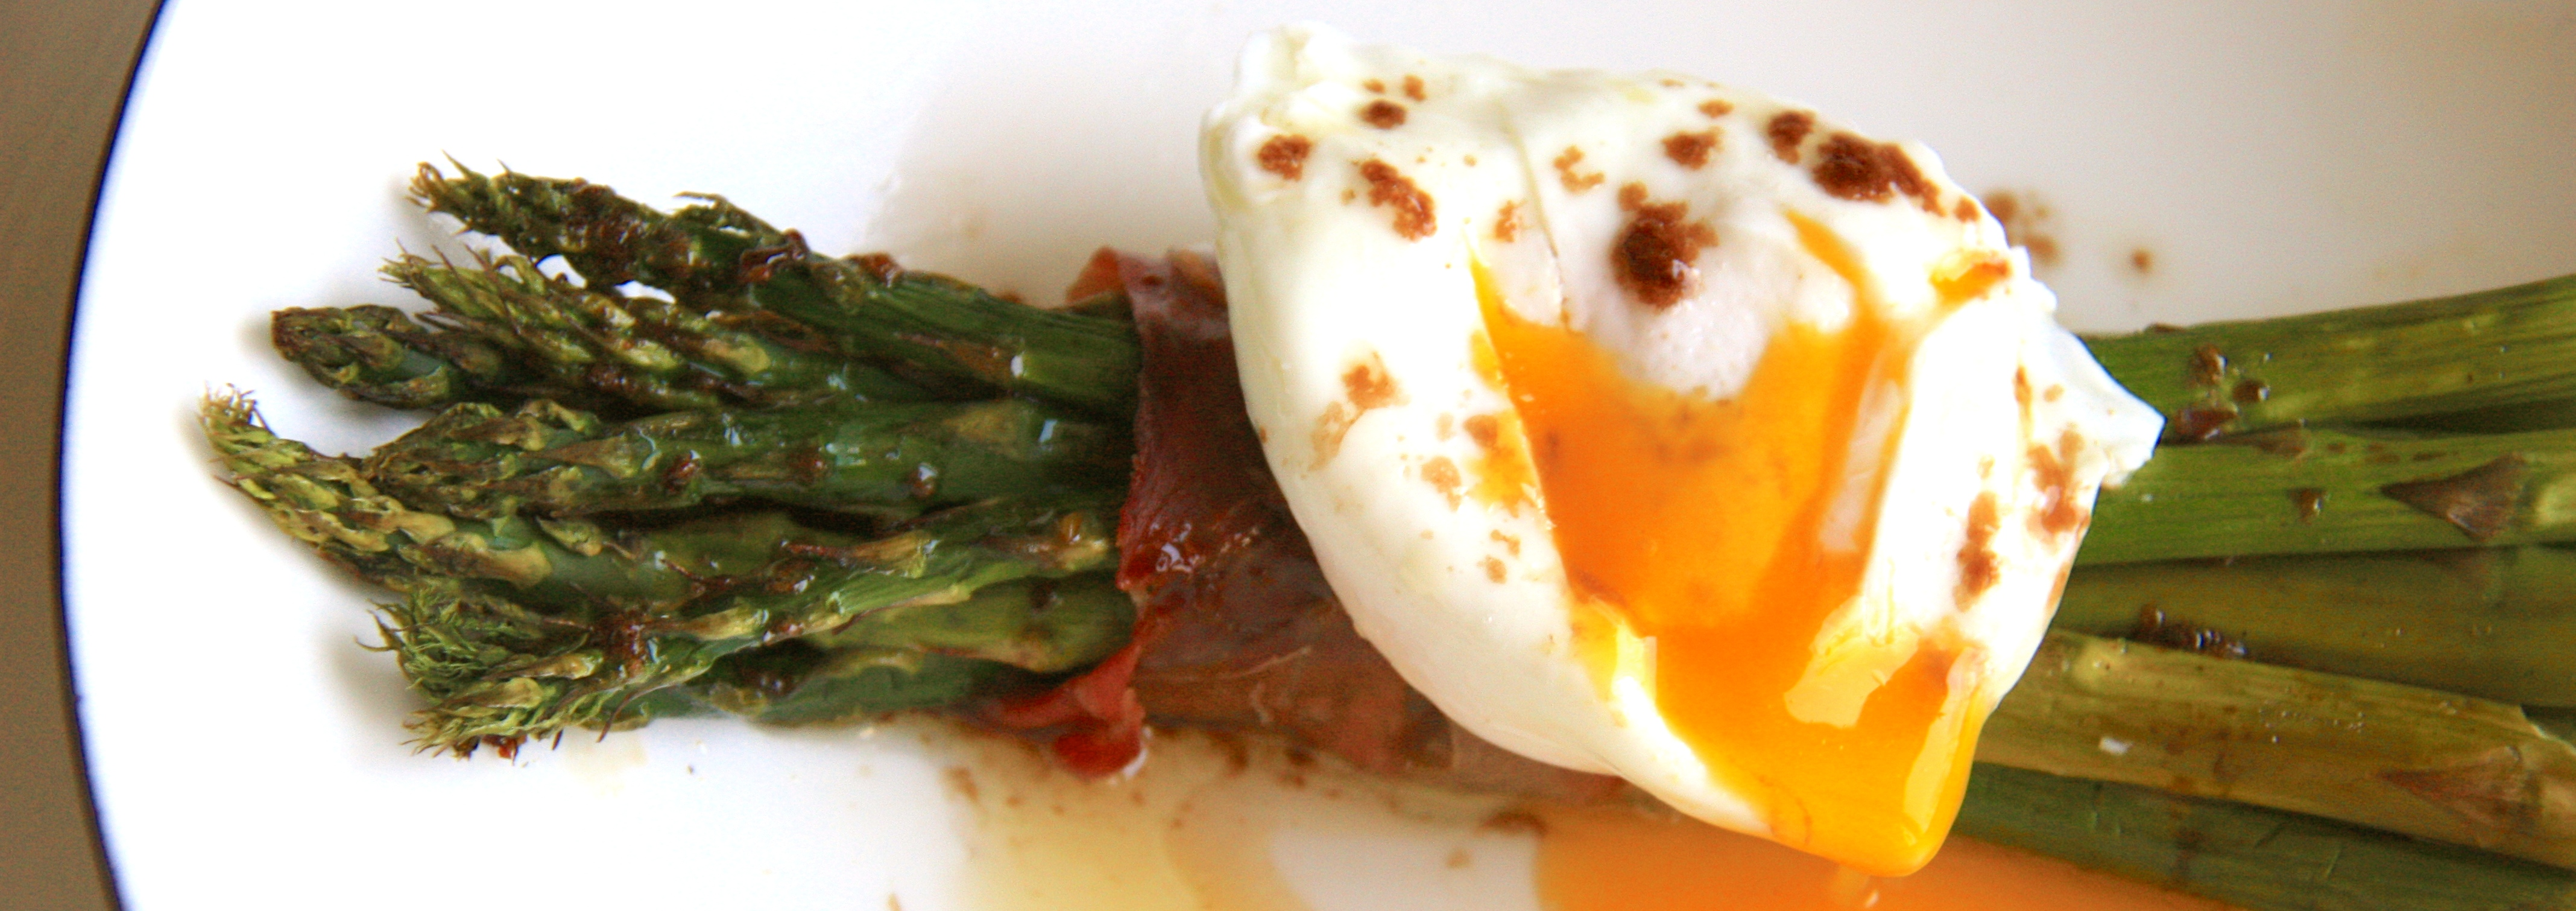 Prosciutto Wrapped Asparagus & Poached Egg with Balsamic Butter